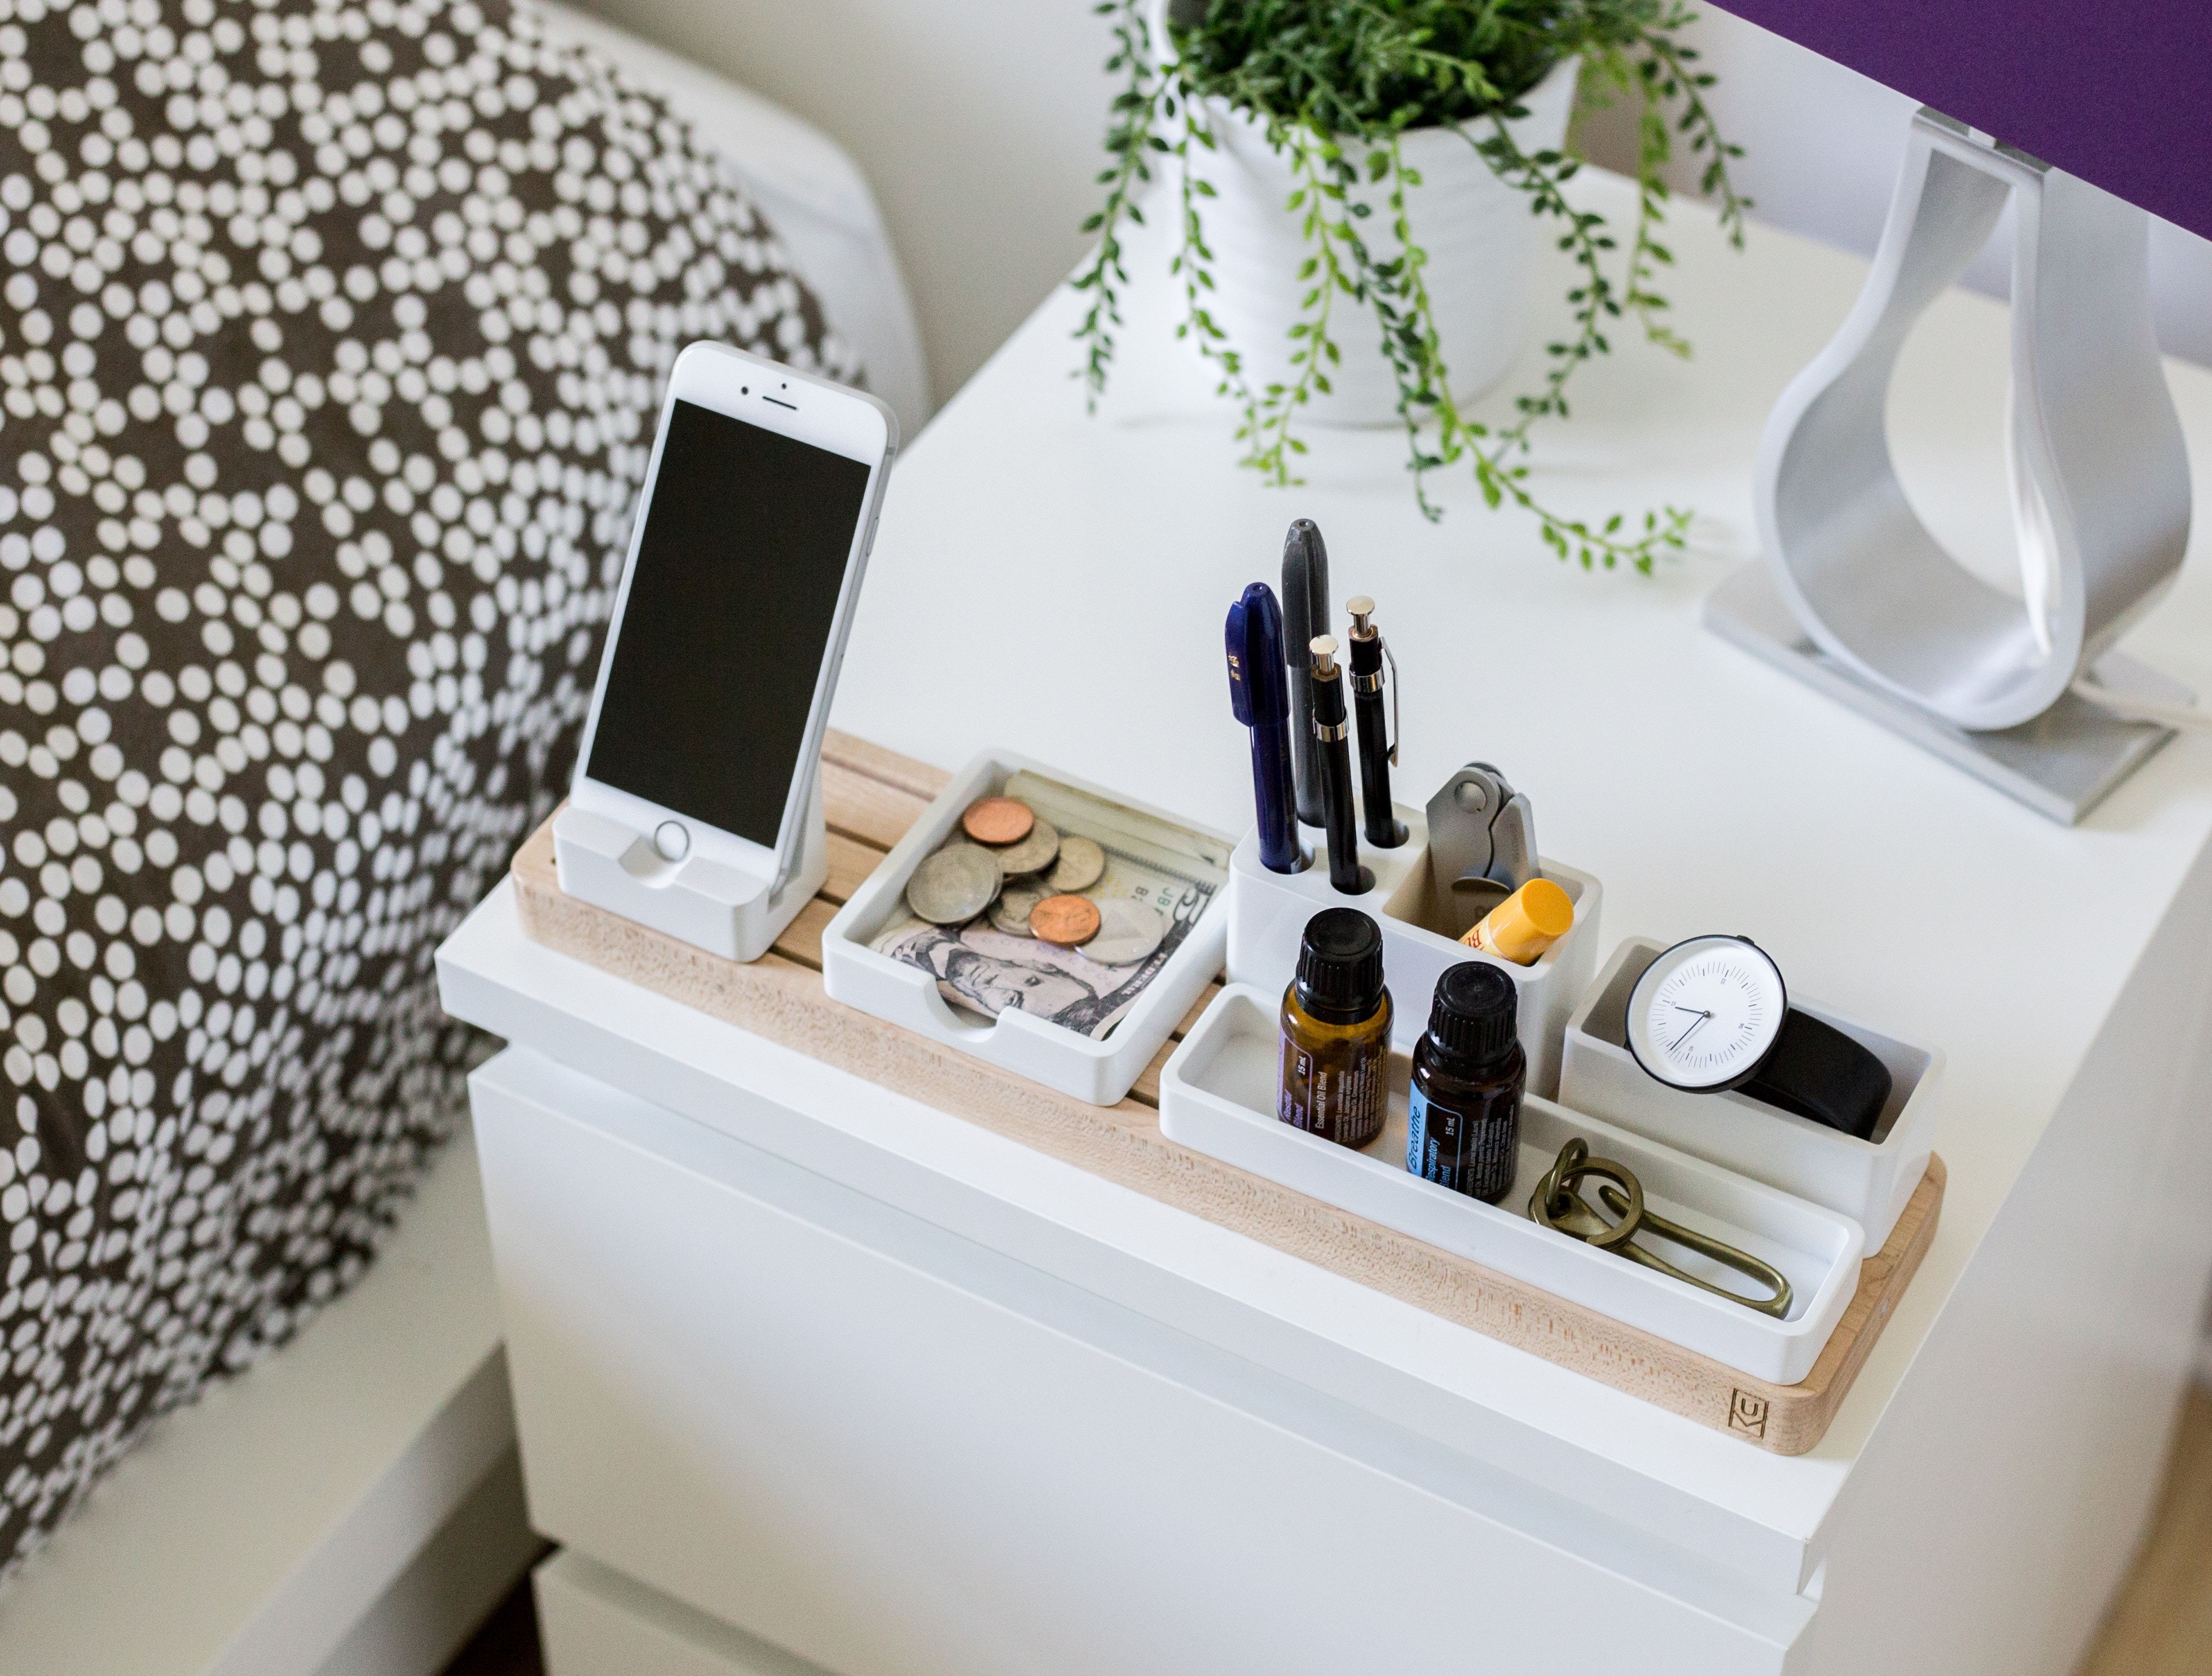 Decluttering, Organising and Cleaning – What's the Difference?